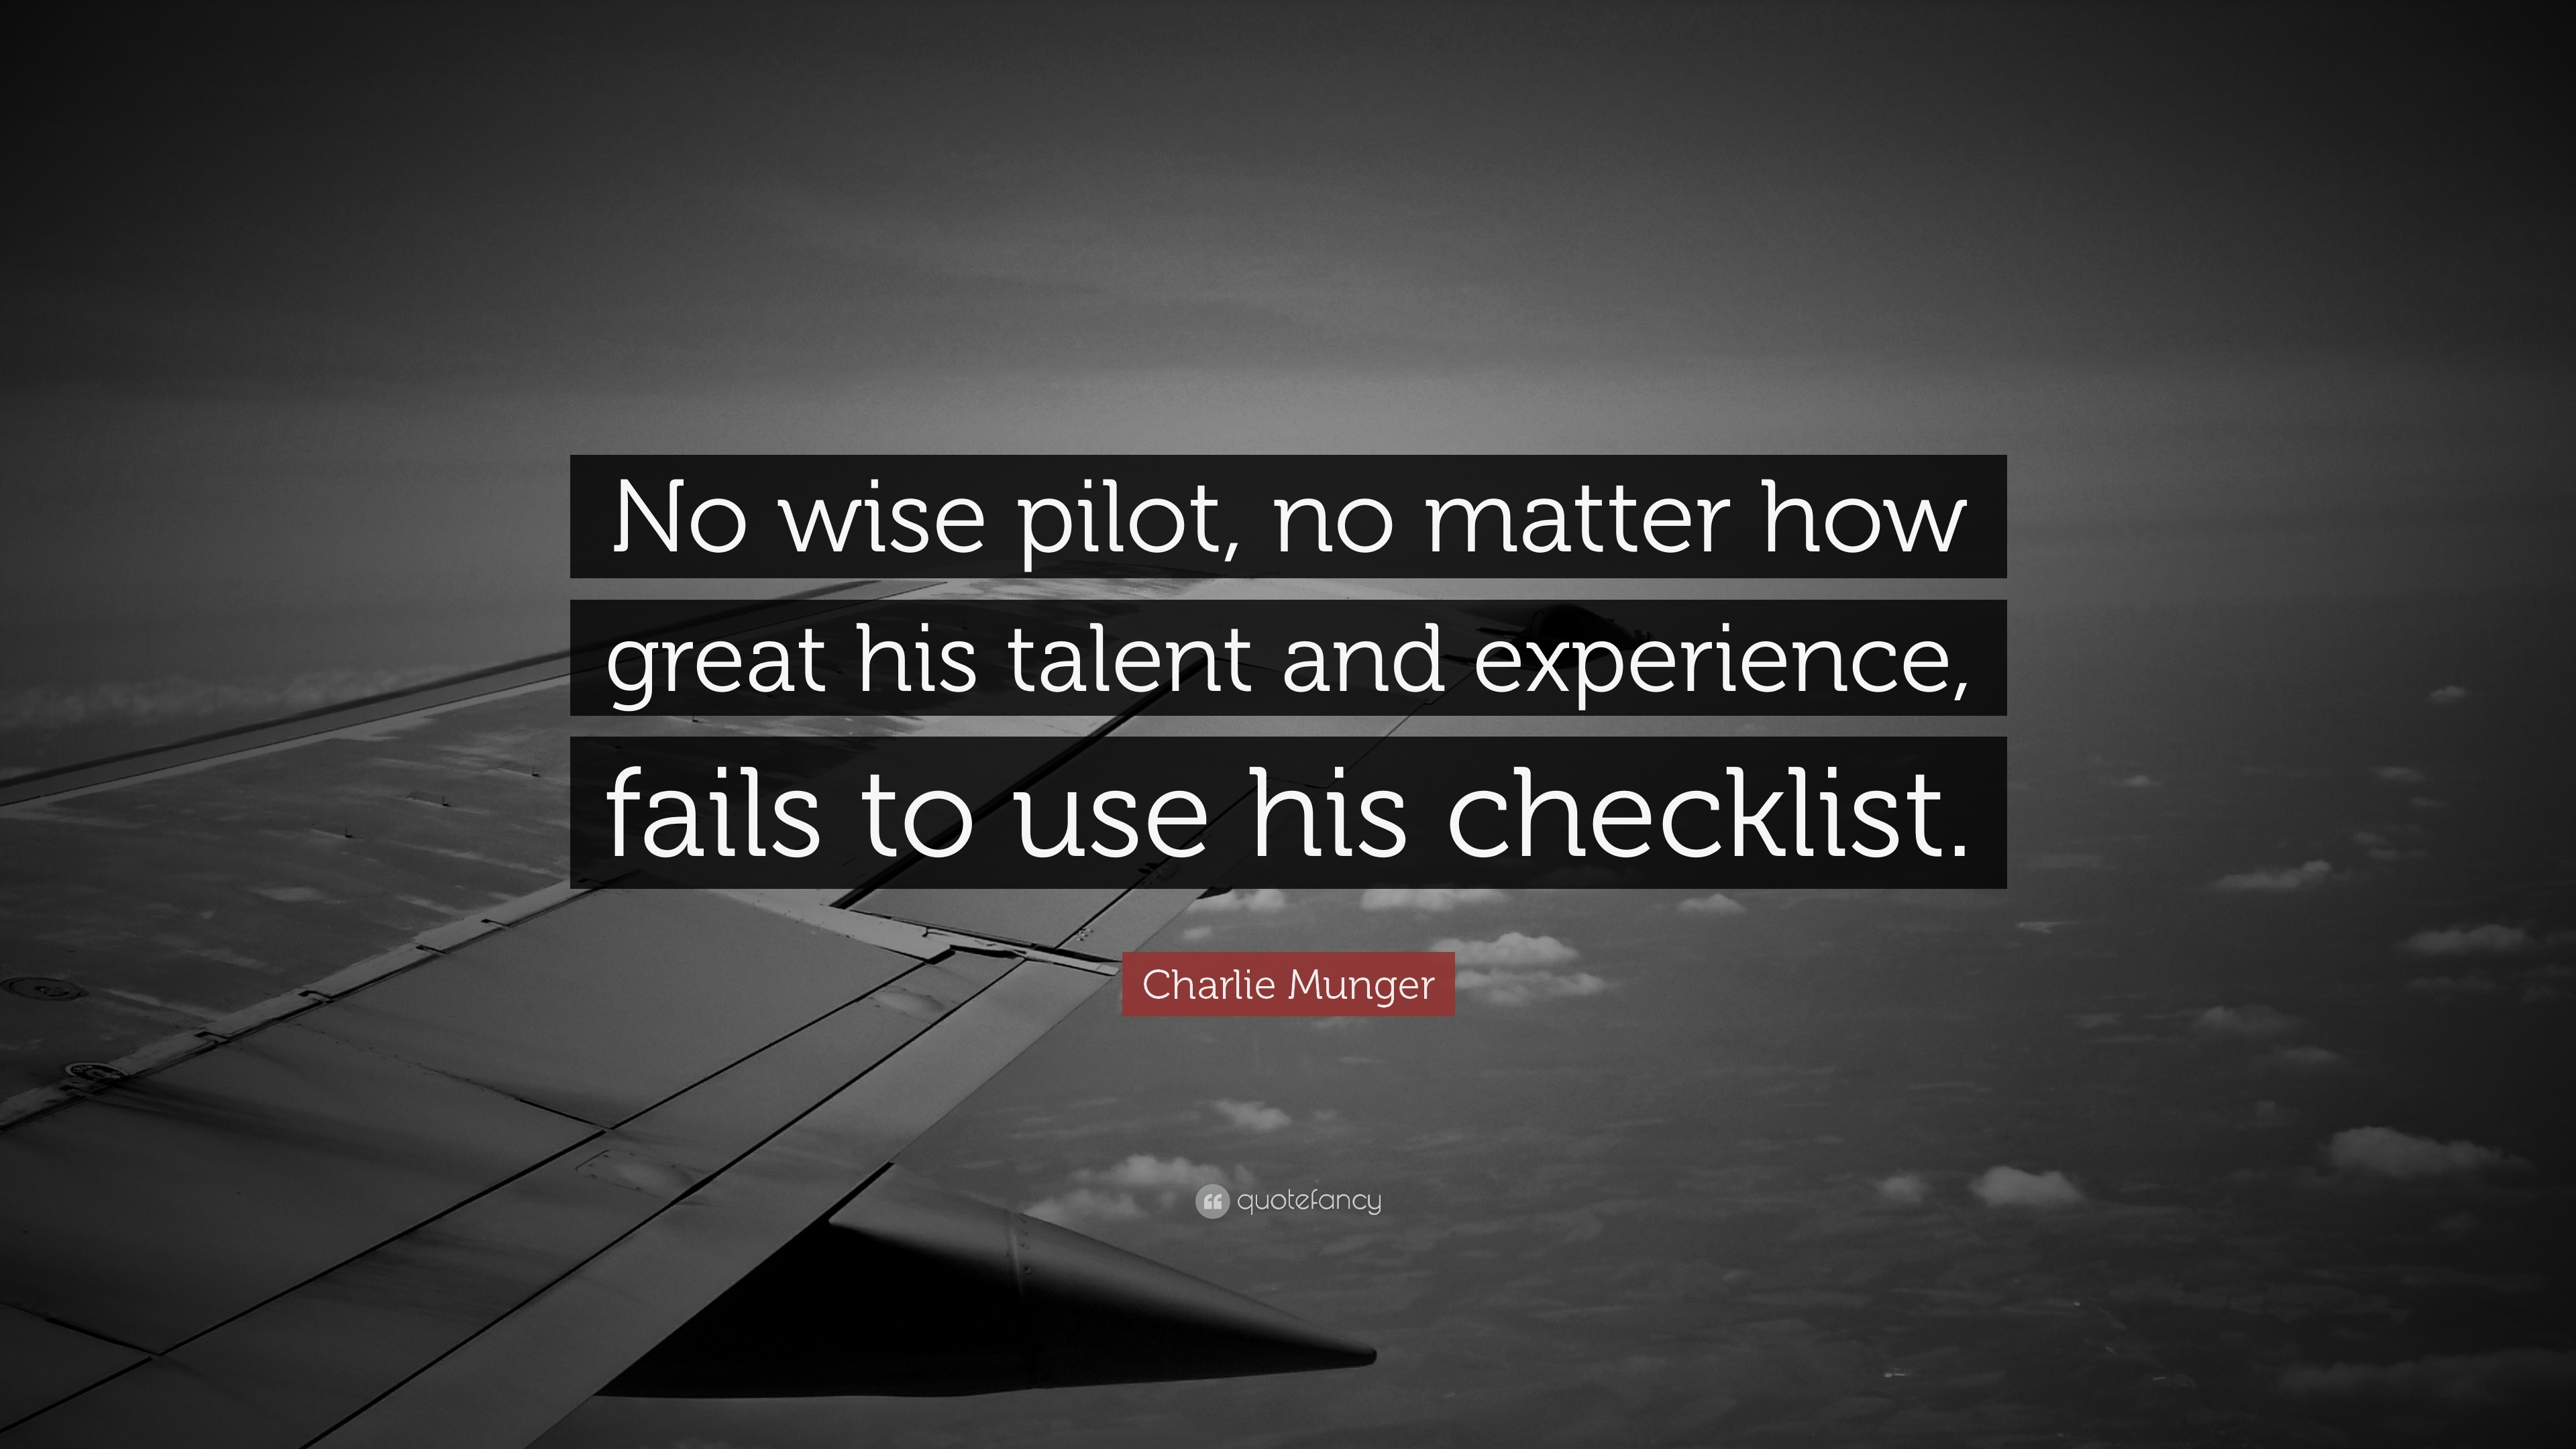 Elon Musk Quotes Wallpaper Charlie Munger Quote No Wise Pilot No Matter How Great